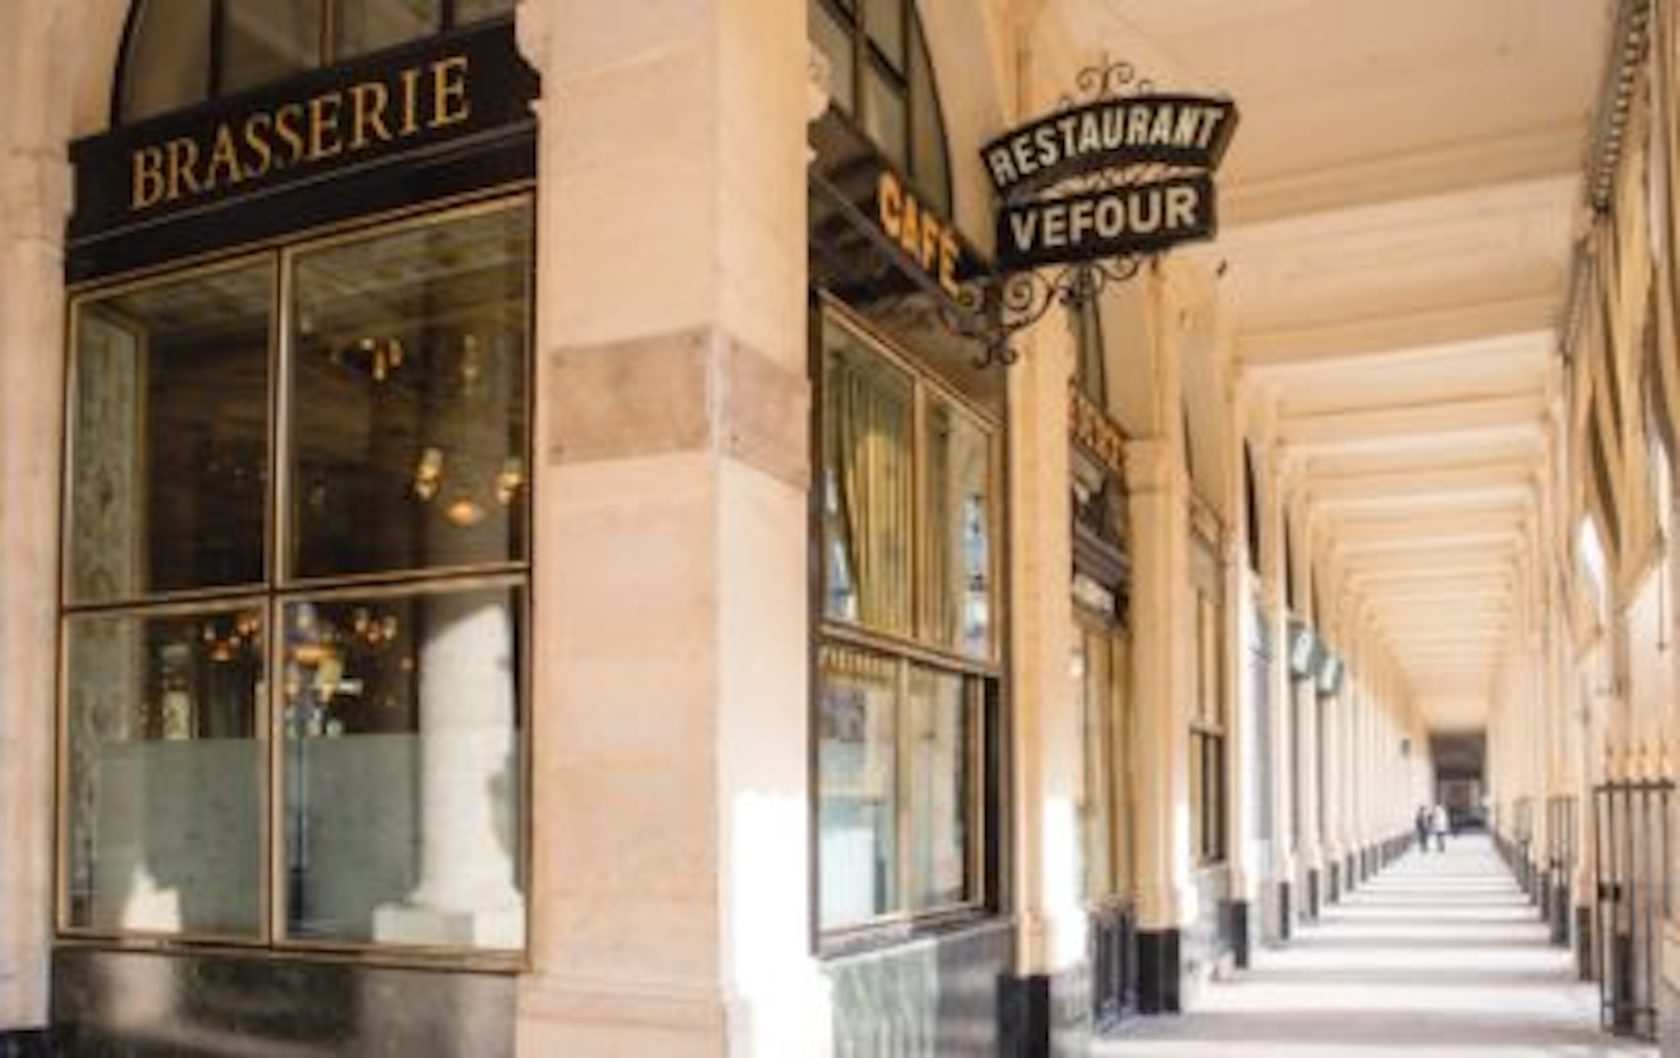 Our Favorite Restaurants near the Louvre by Paris Perfect